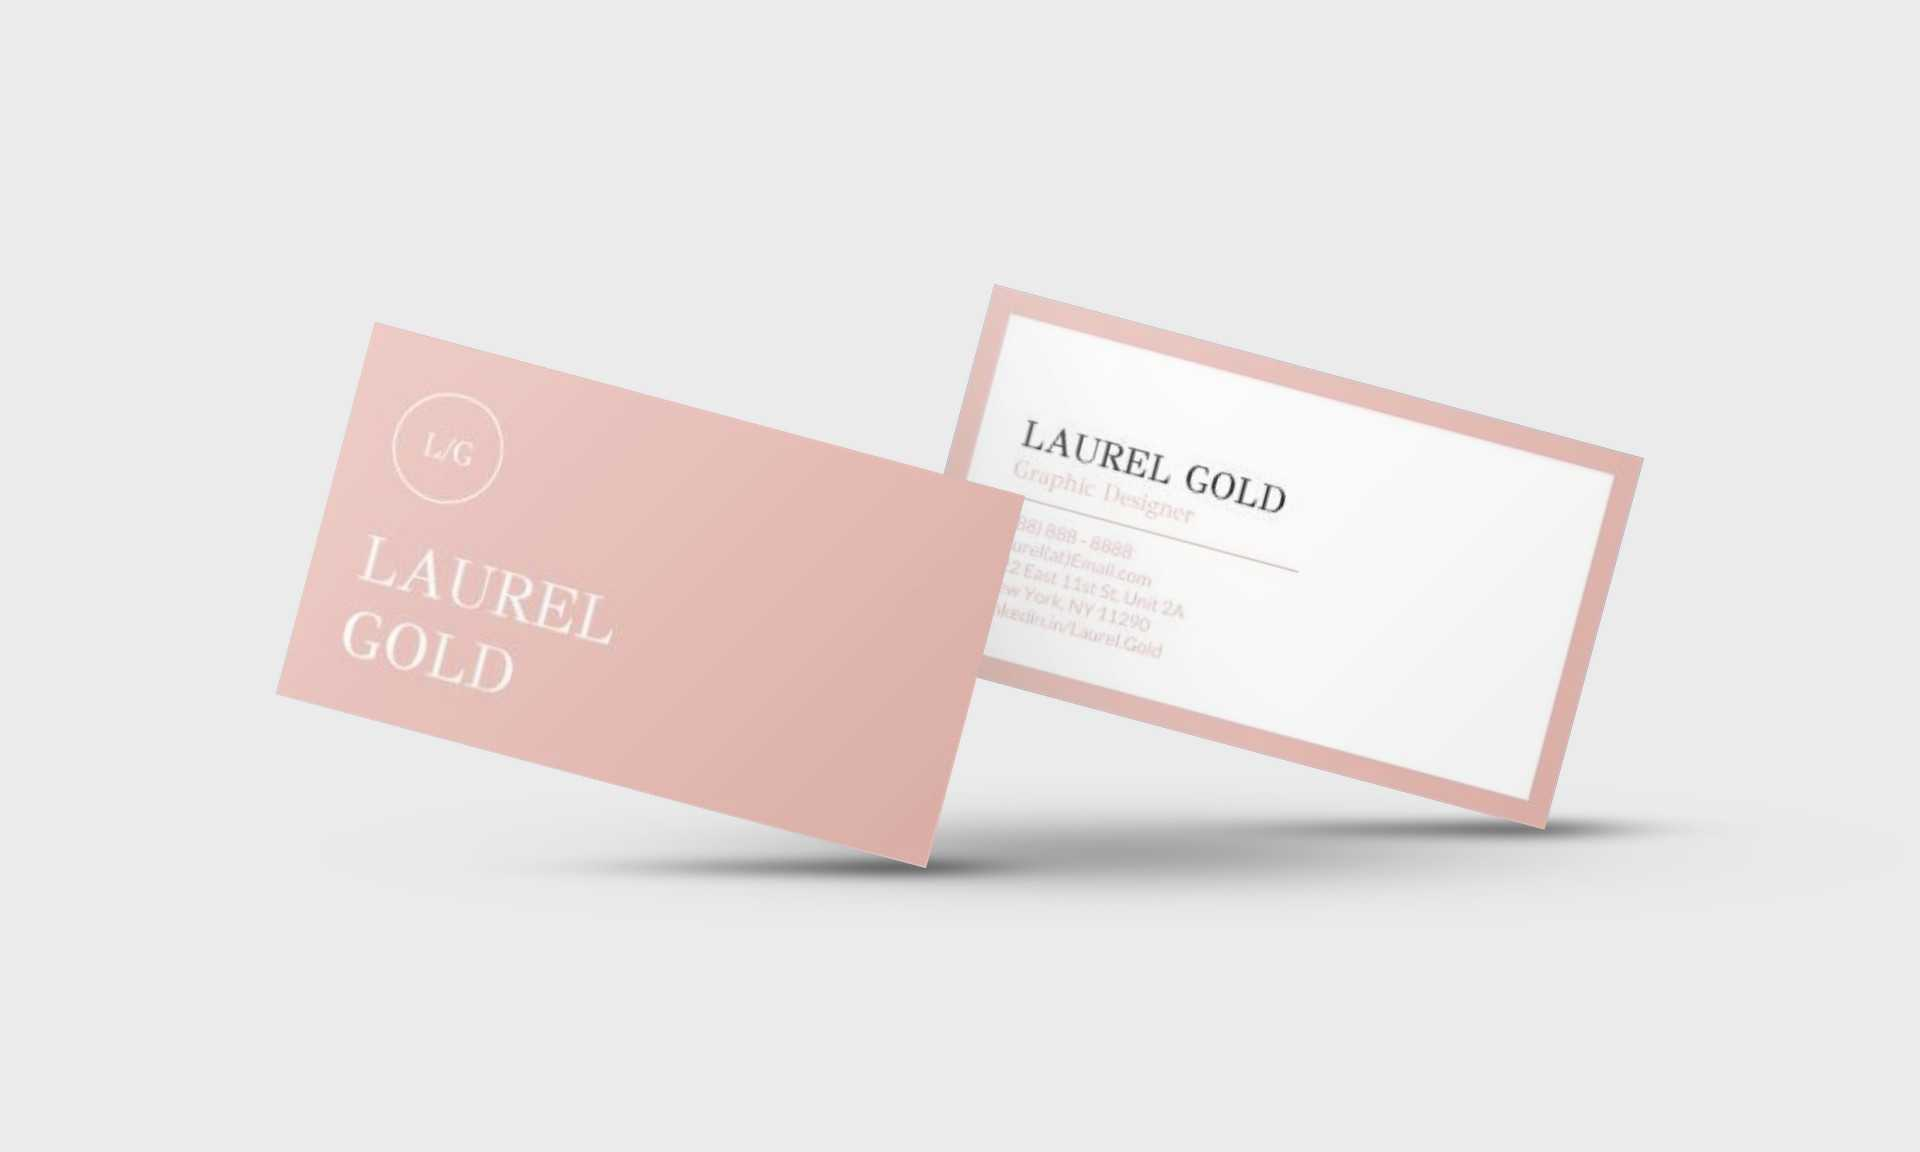 Laurel Gold Google Docs Business Card Template - Stand Out Shop For Google Docs Business Card Template